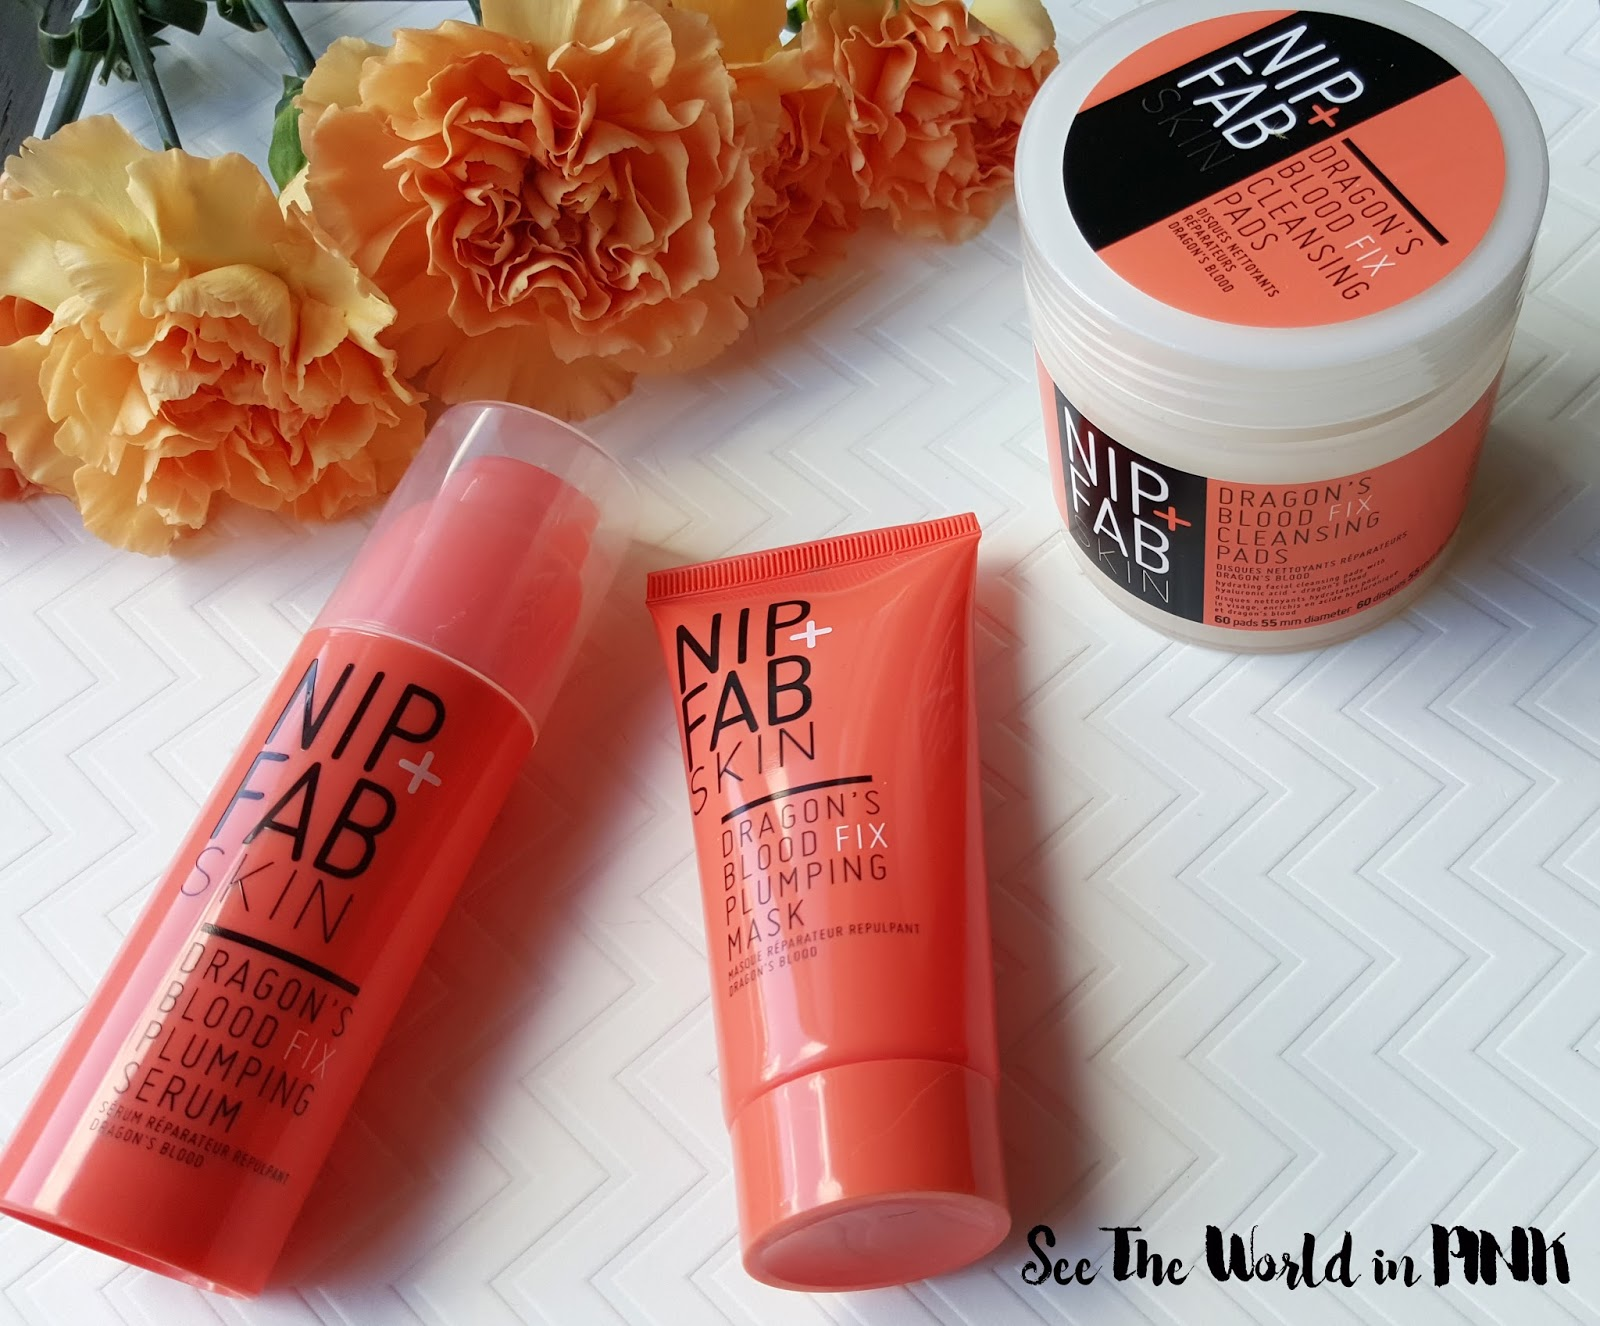 Nip + Fab Dragon's Blood Skincare Line Review